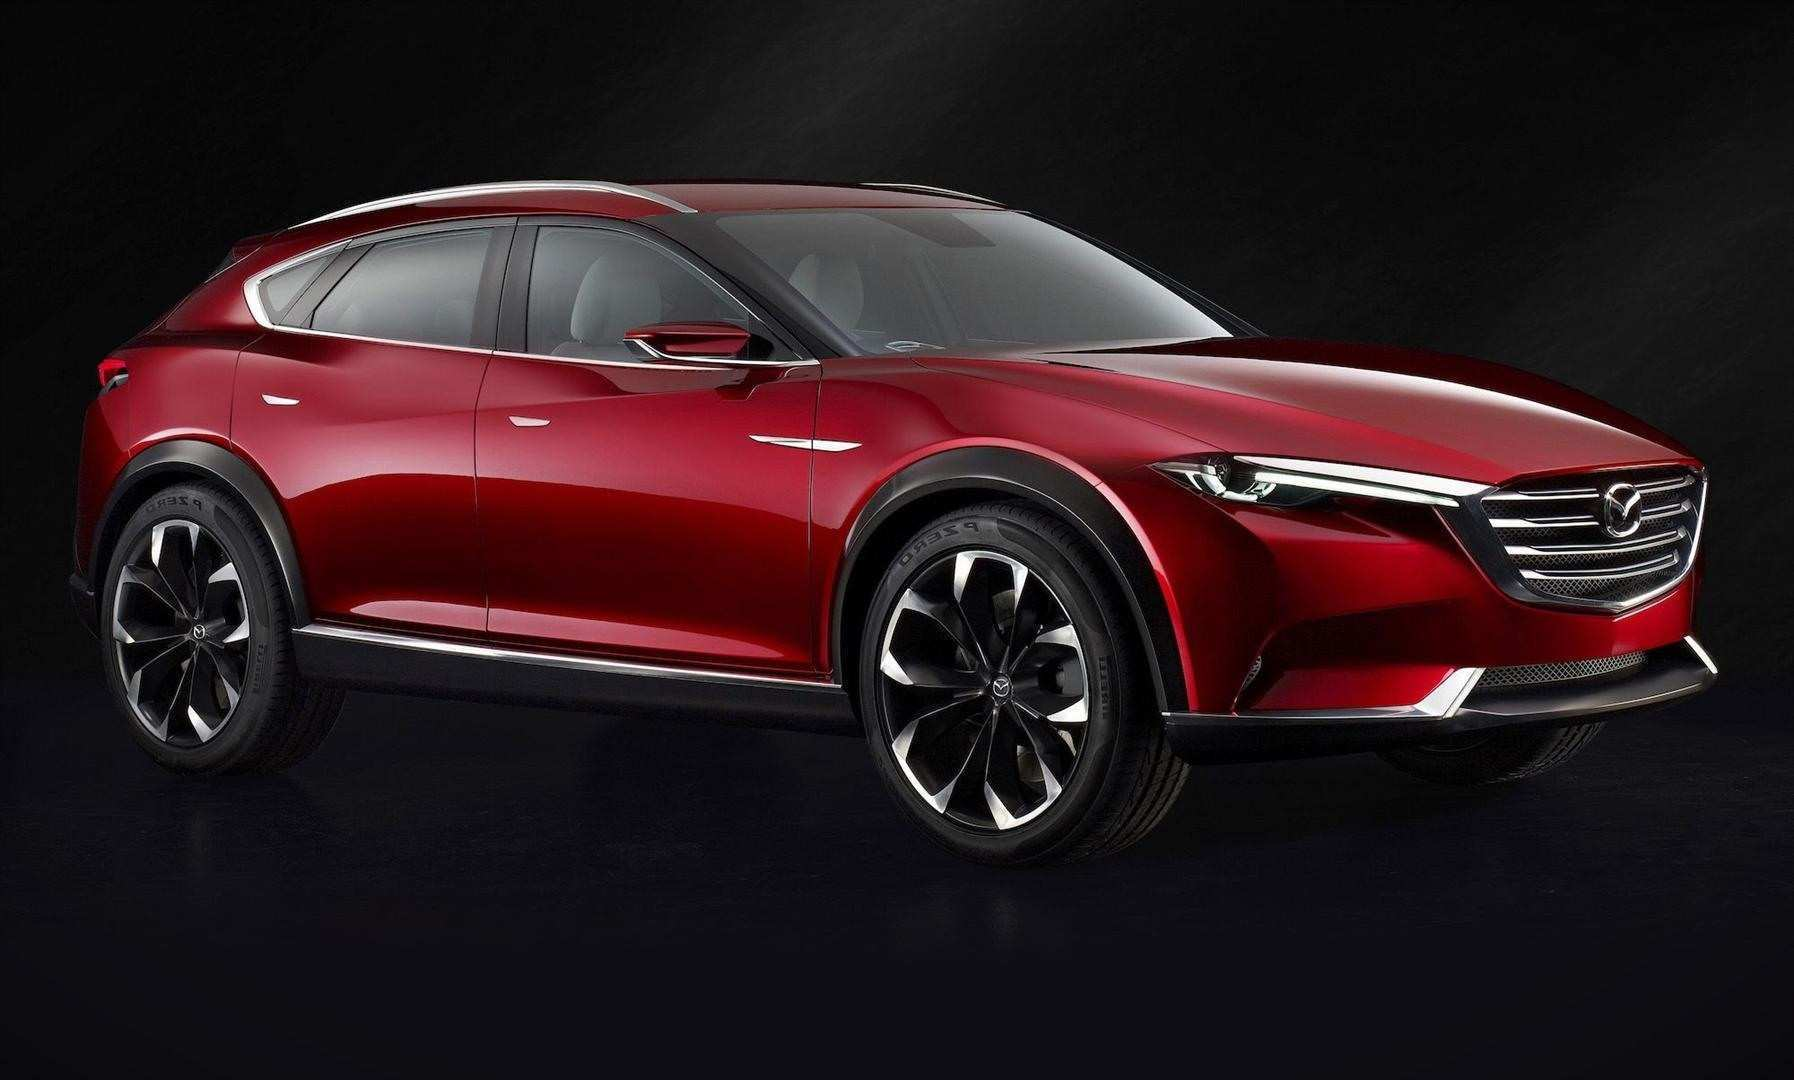 11 All New Mazda Cx 9 2020 New Concept Pricing by Mazda Cx 9 2020 New Concept